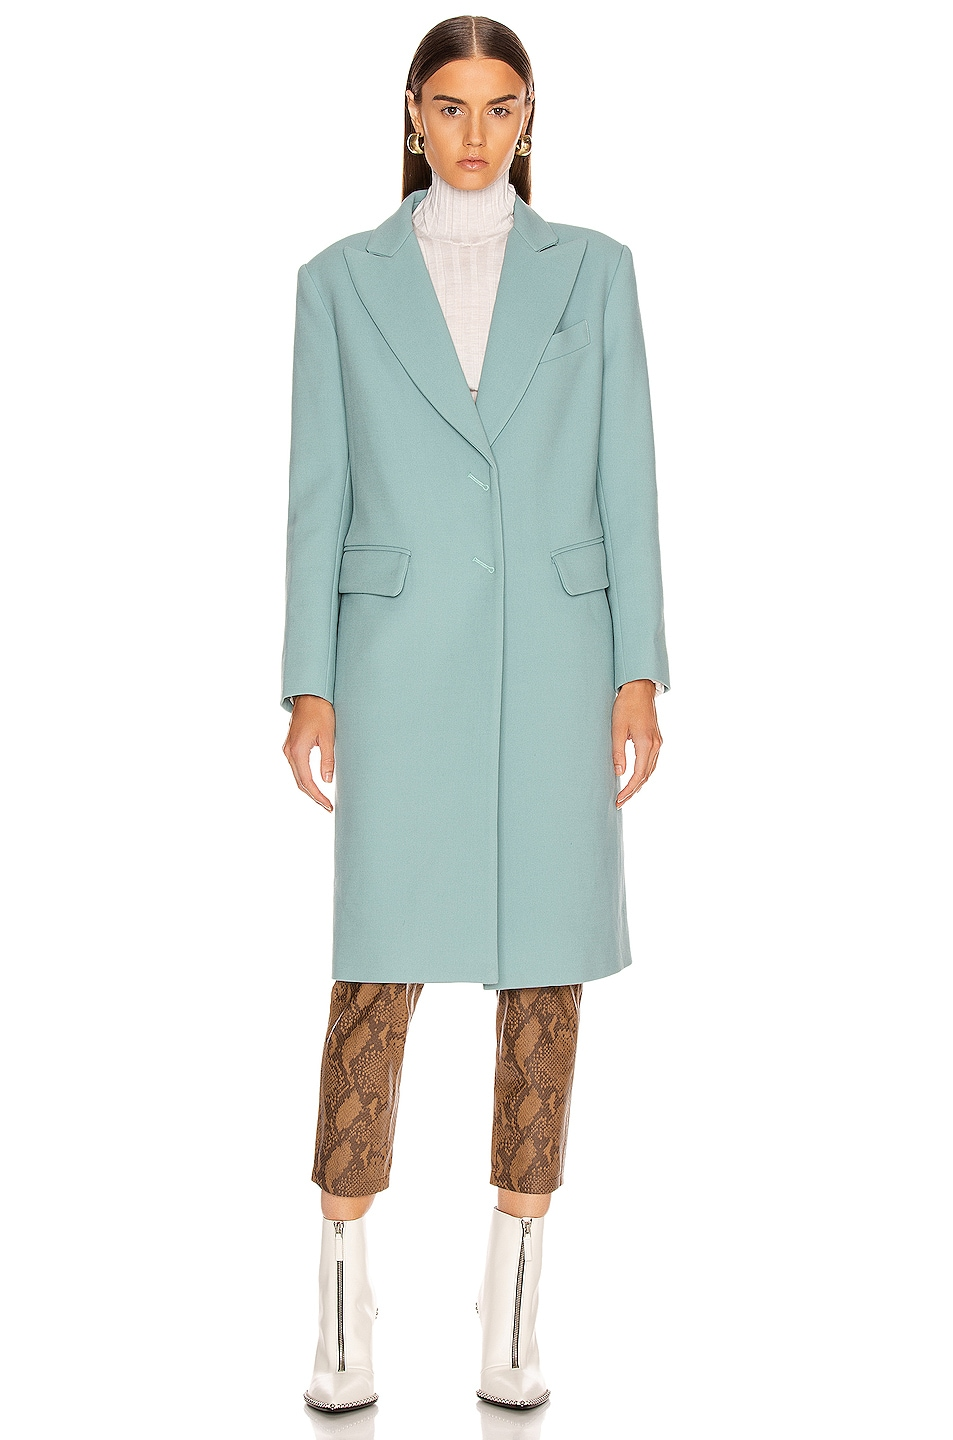 Image 2 of Smythe Peaked Lapel Overcoat in Mineral Blue